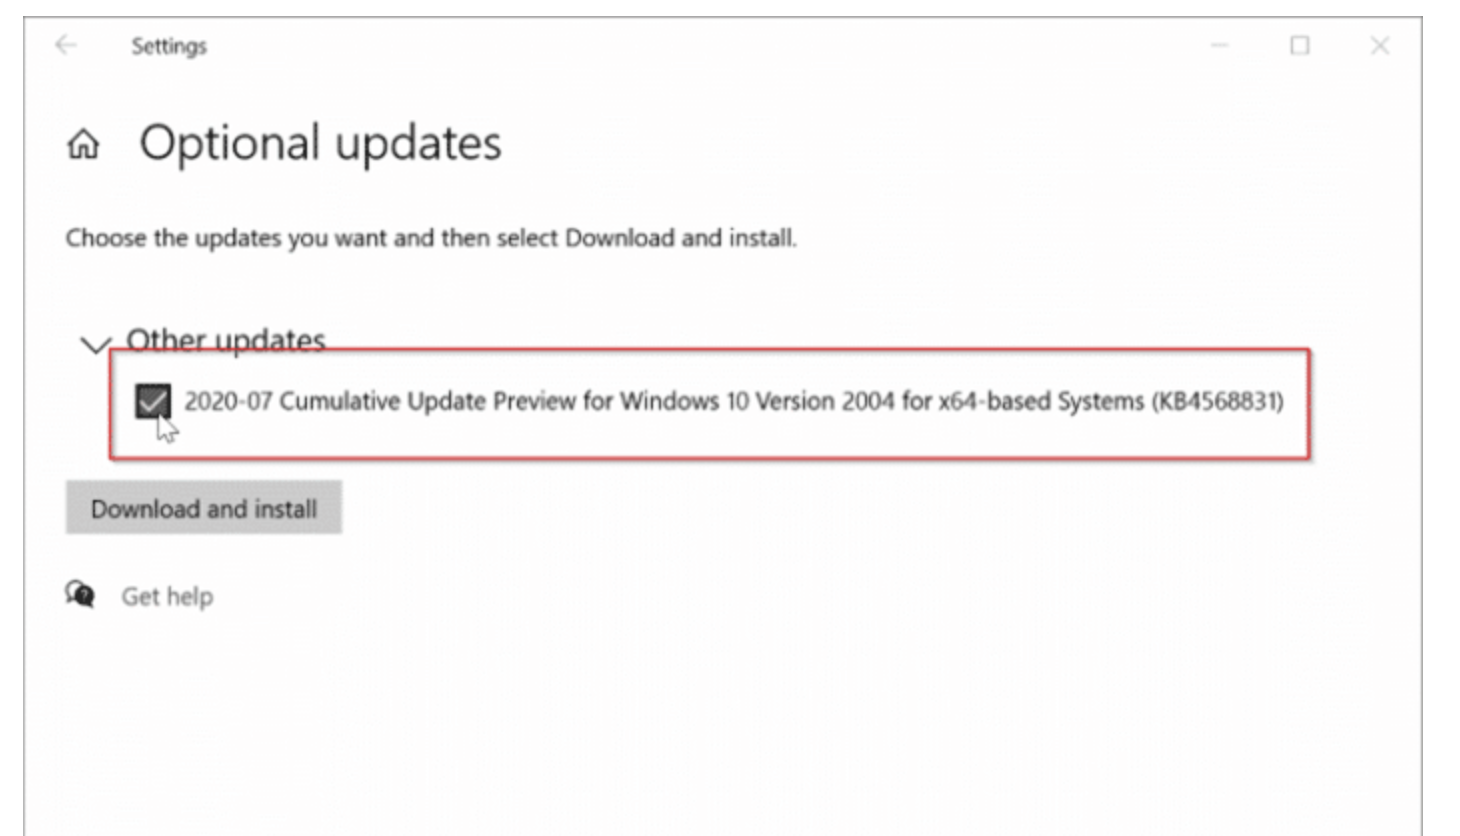 Check all the optional updates then click the Download and install button.